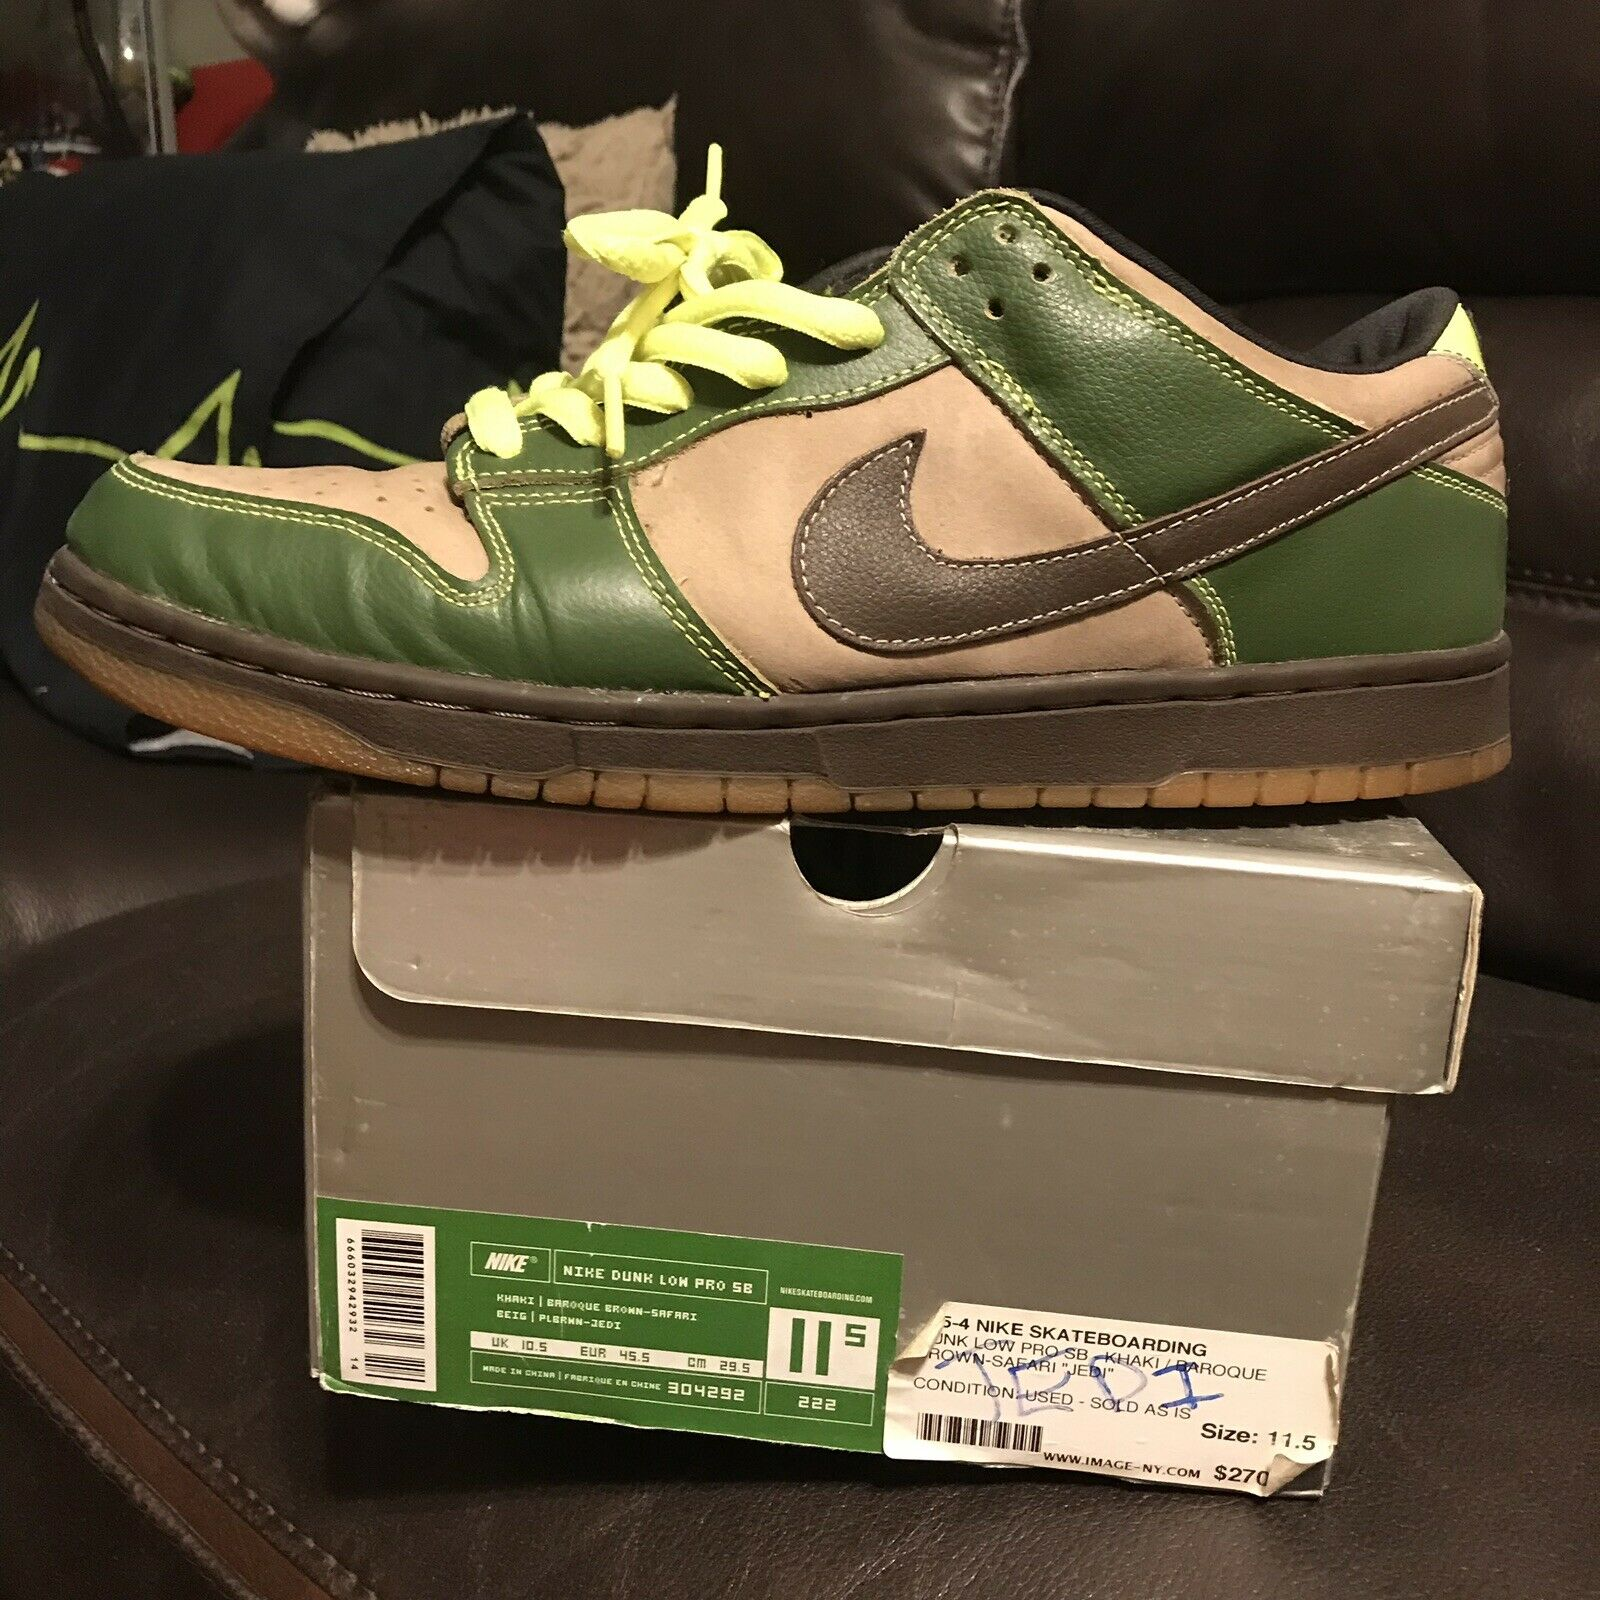 Nike Dunk Low Pro SB Jedi Size 11 (304292-22) Lightly used, with box, 2004